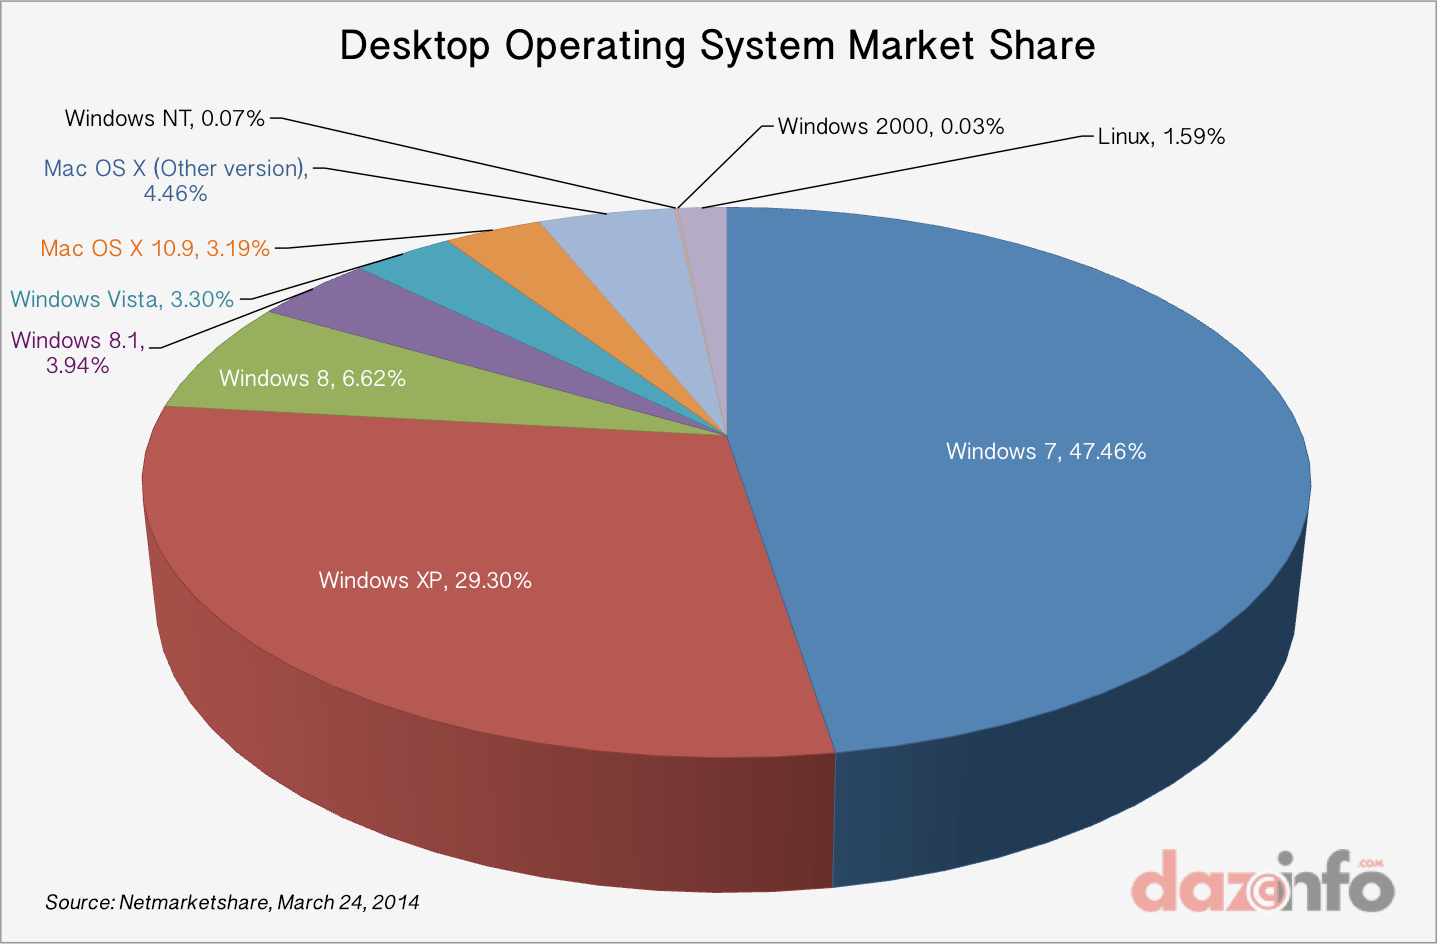 microsoft a giant monopolizing the software market Microsoft licensing giant yanked off market after sales bid fails comparex on shelf with boxed software, other dusty things by paul kunert 15 apr 2016 at 10:03.